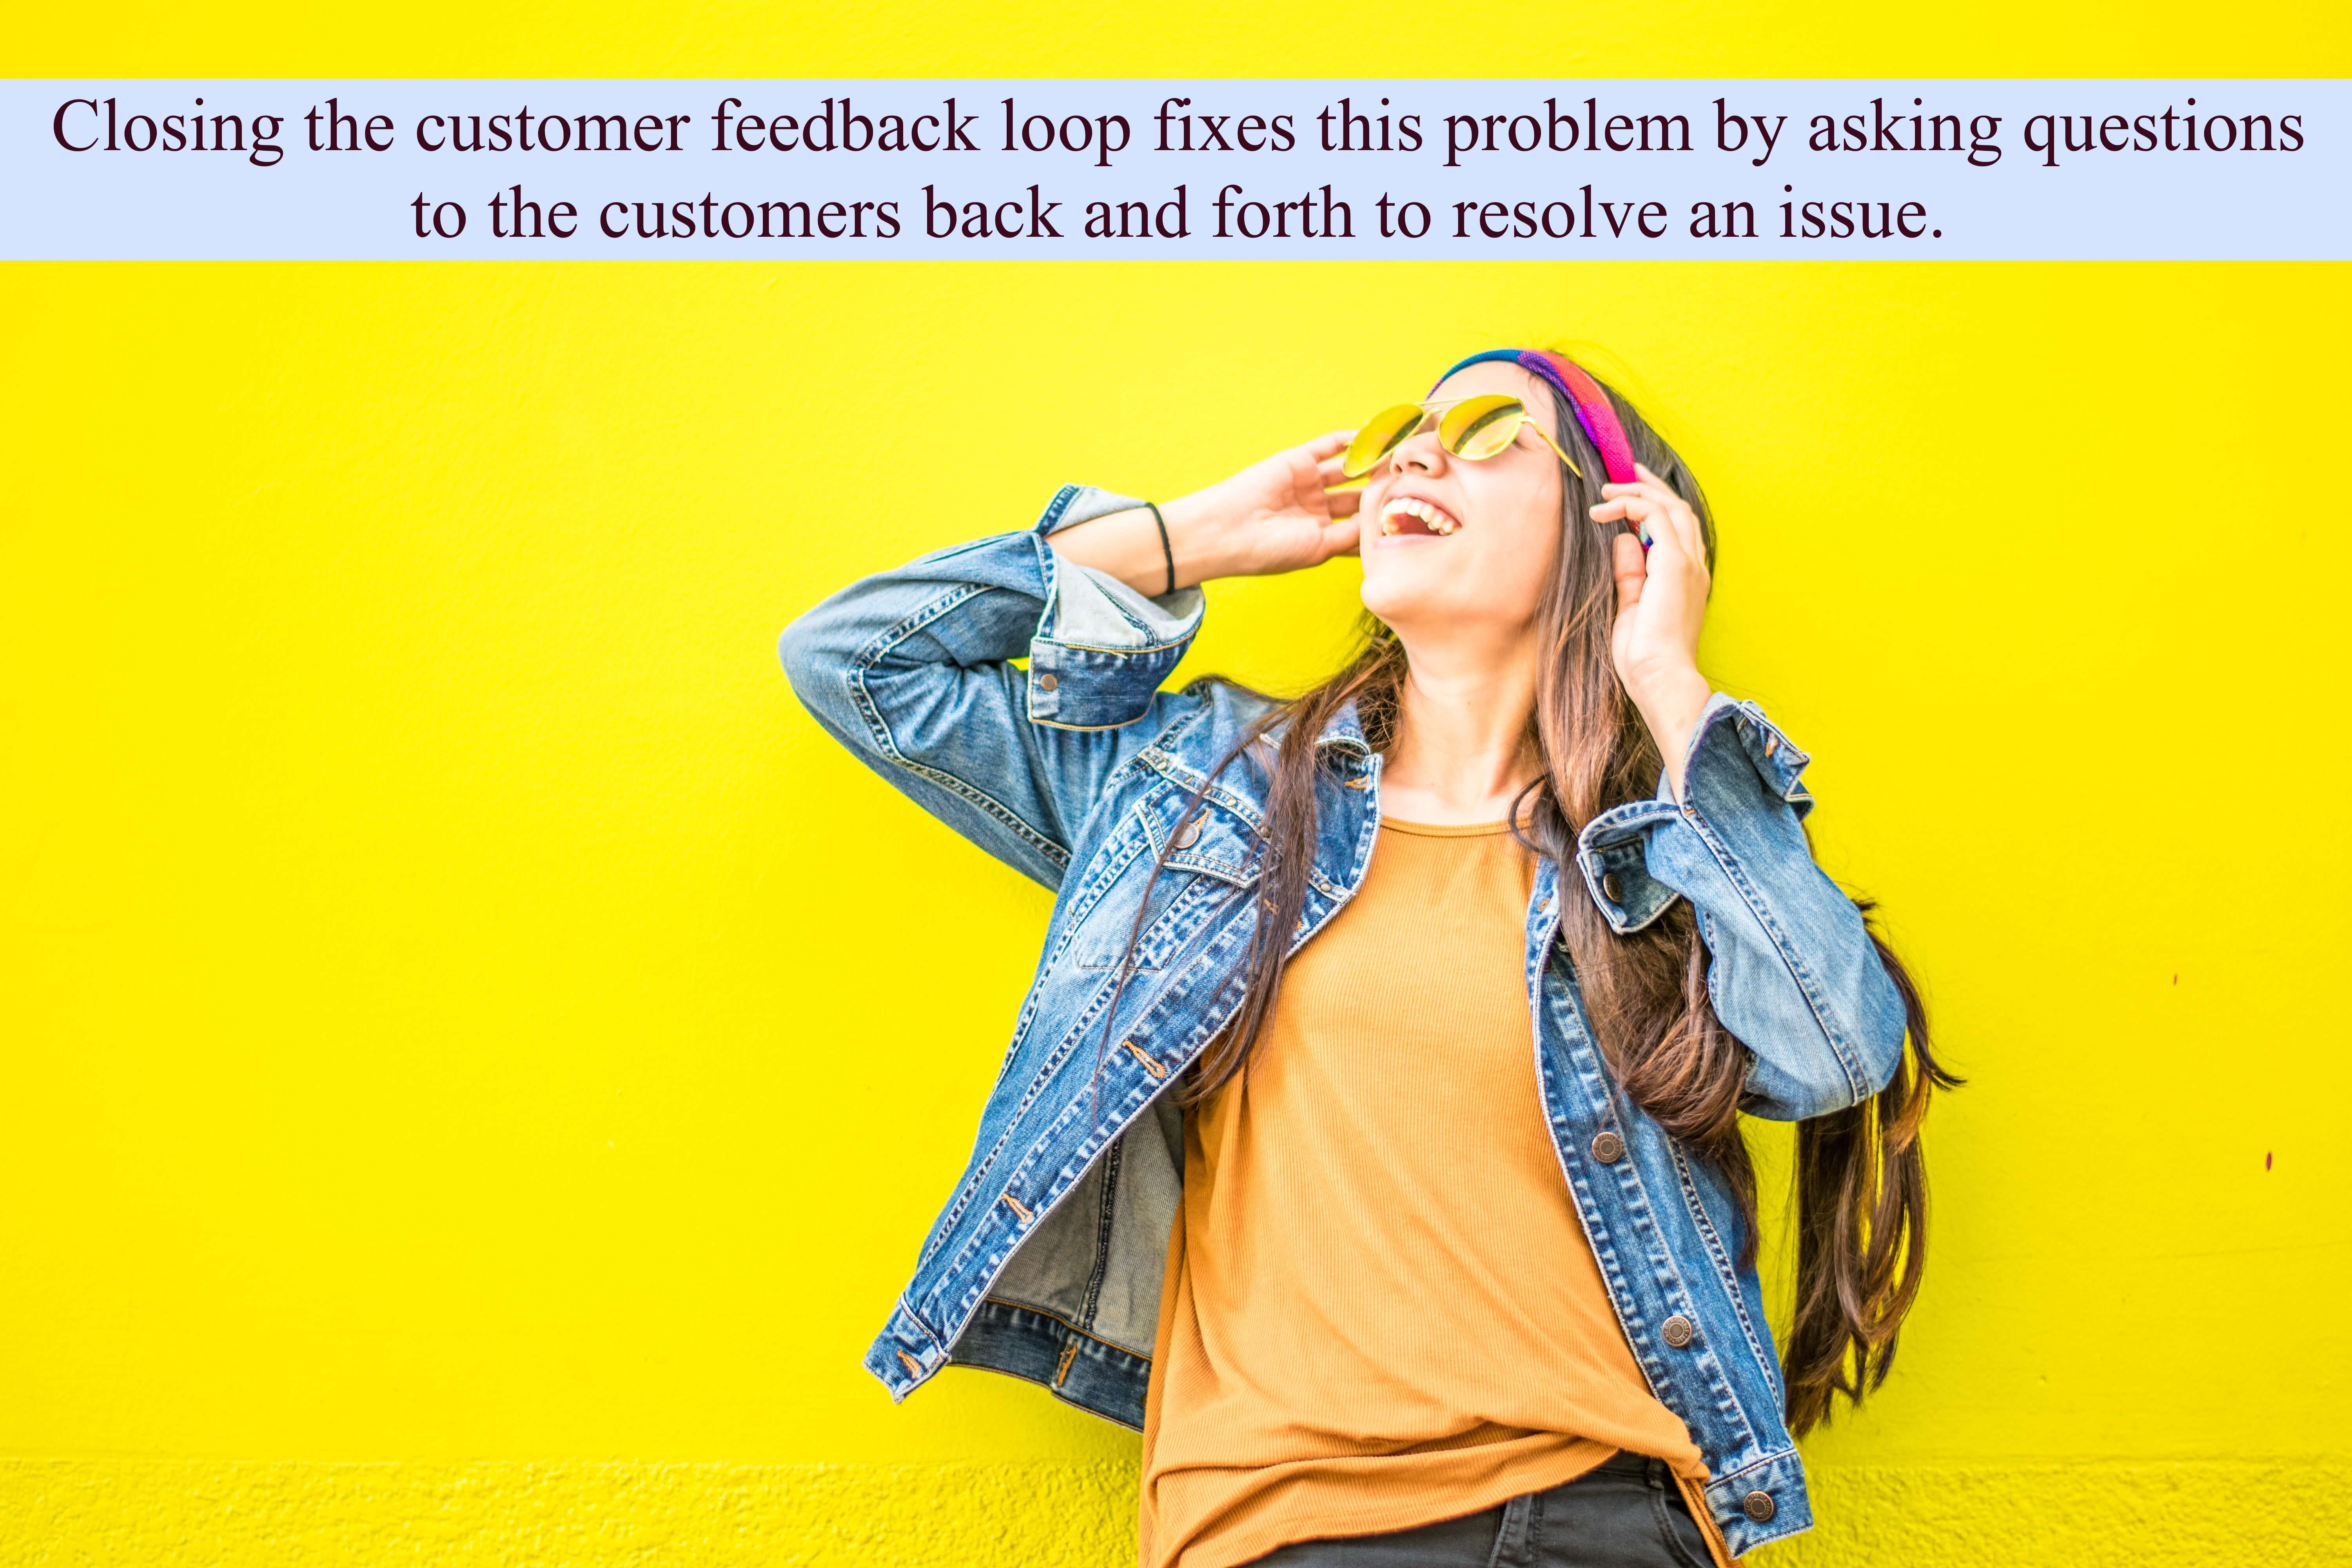 The fact that a customer's feedback was taken seriously, and actions are taken based on it builds better credibility for the brand.